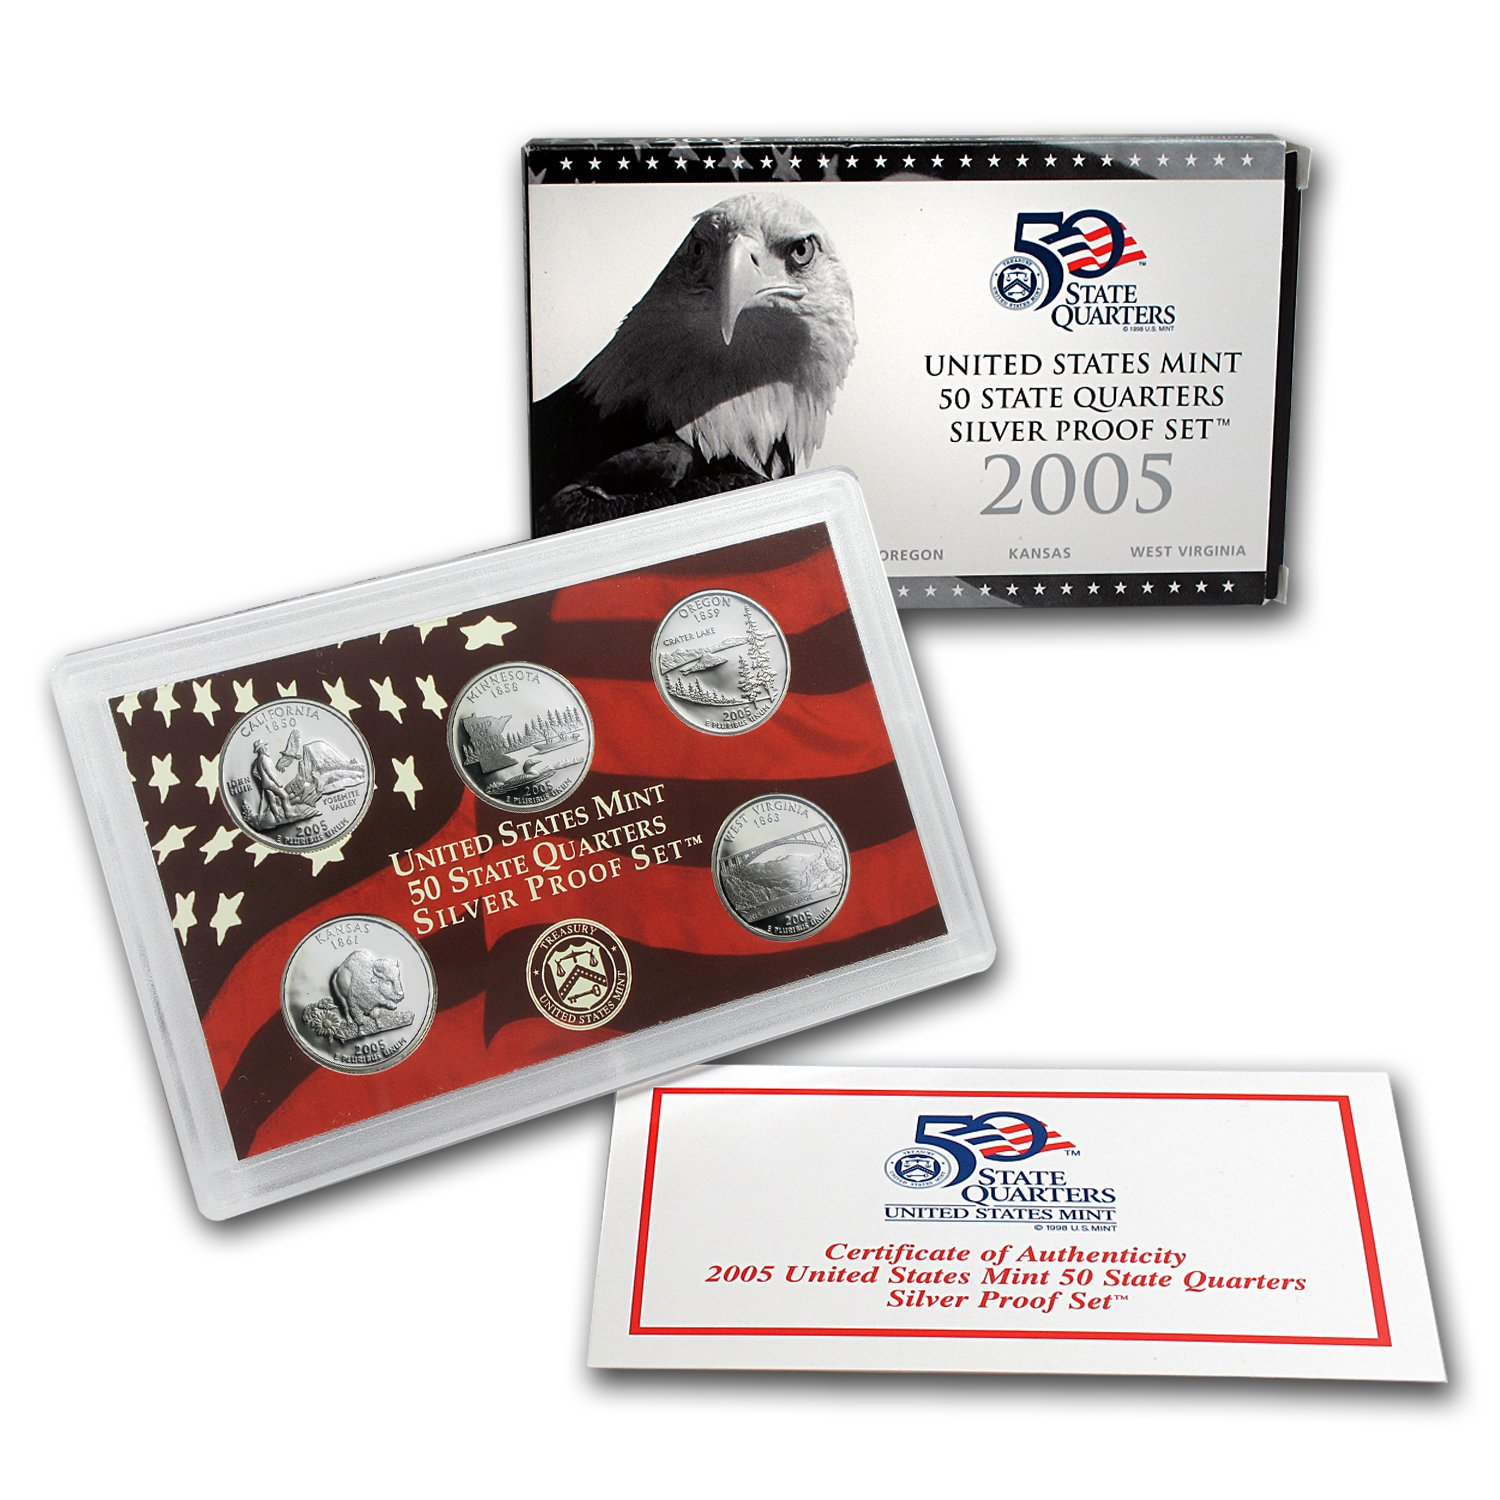 SILVER Proof Set U.S Mint Made in Red Mint Box with COA 2005-s U.S